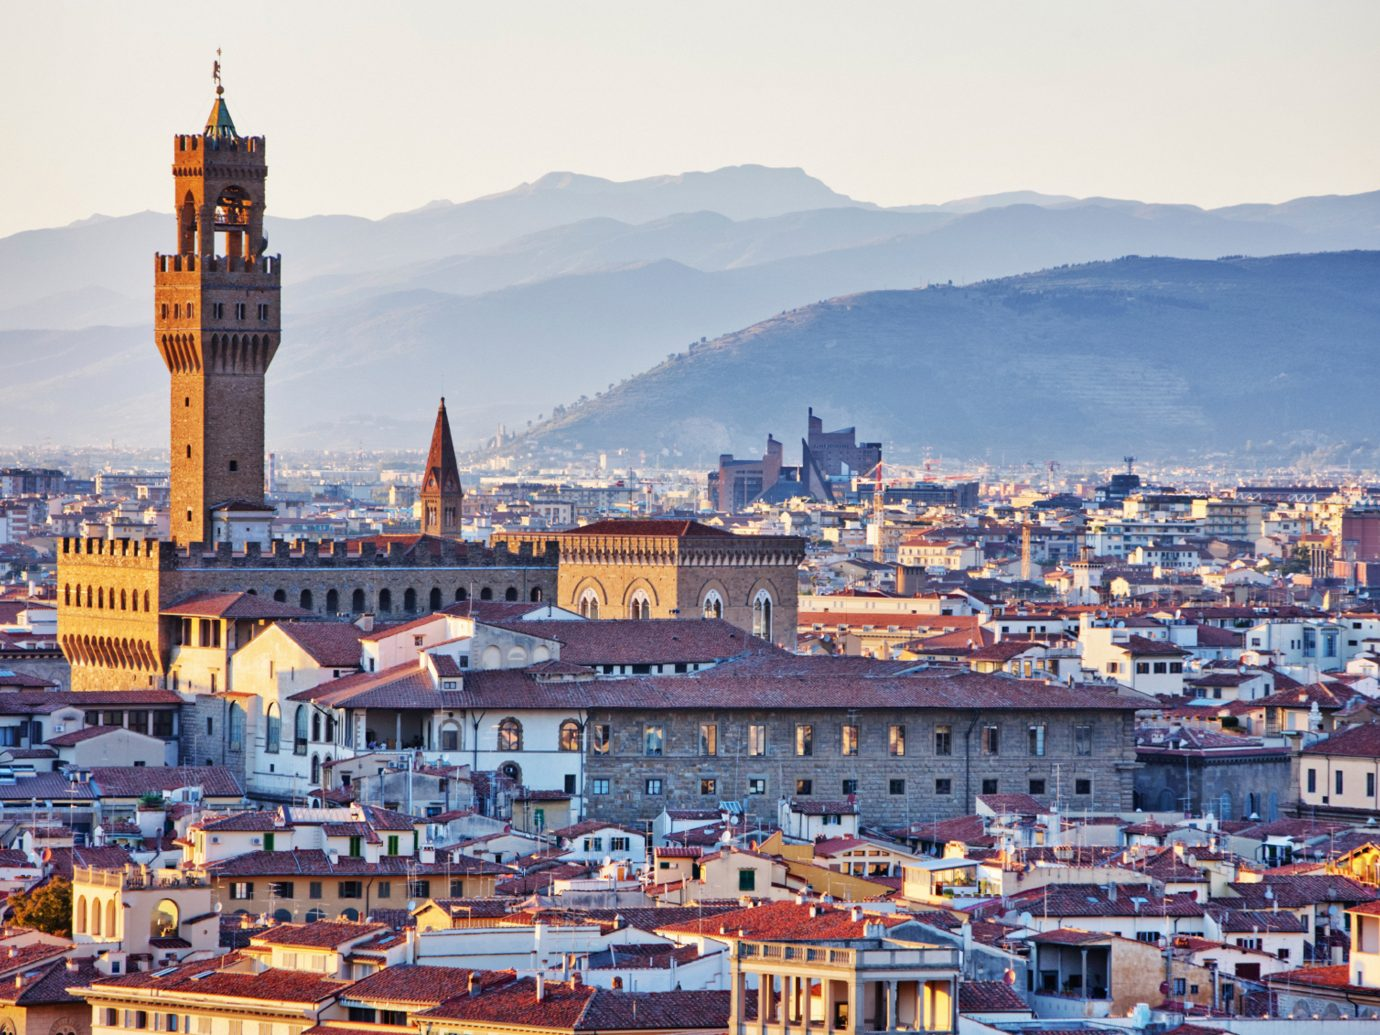 Architecture Buildings Florence Historic Hotels Italy Landmarks Monuments Town outdoor sky scene cityscape Boat Harbor City mountain landmark human settlement skyline vacation evening tourism background tower dusk vehicle Sea panorama